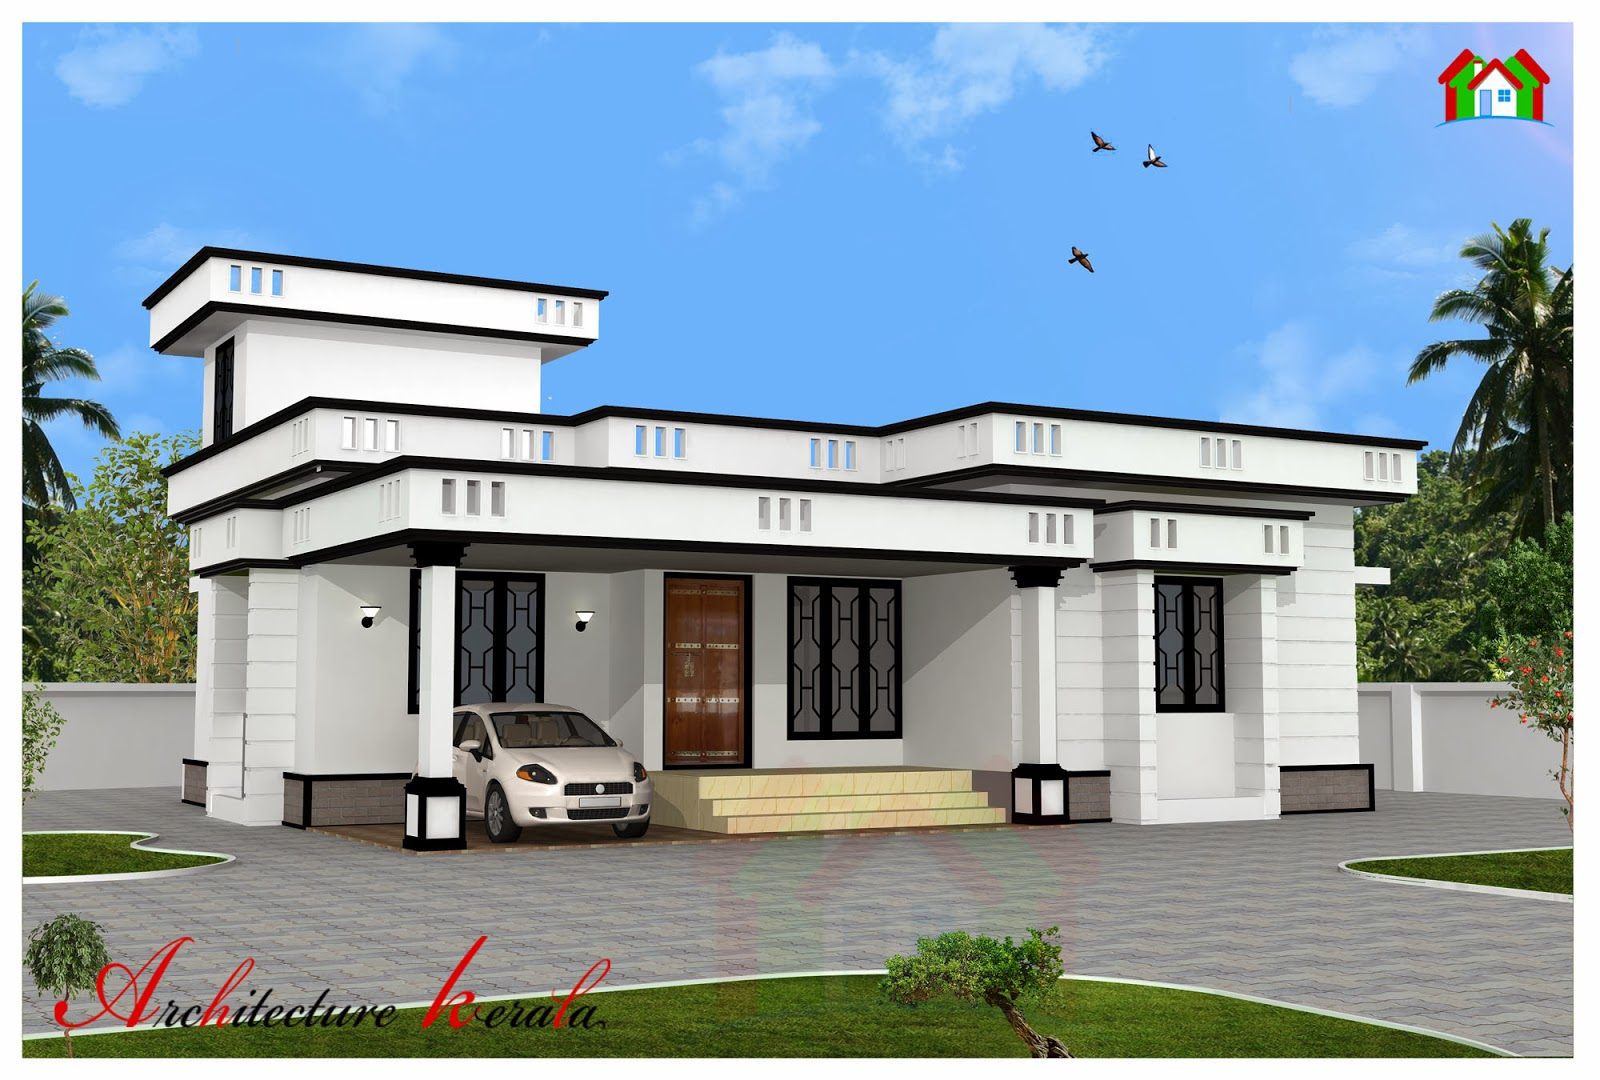 1200 Square Feet Two Bedroom House Plan And Elevation: 1200 sq ft house plan indian design